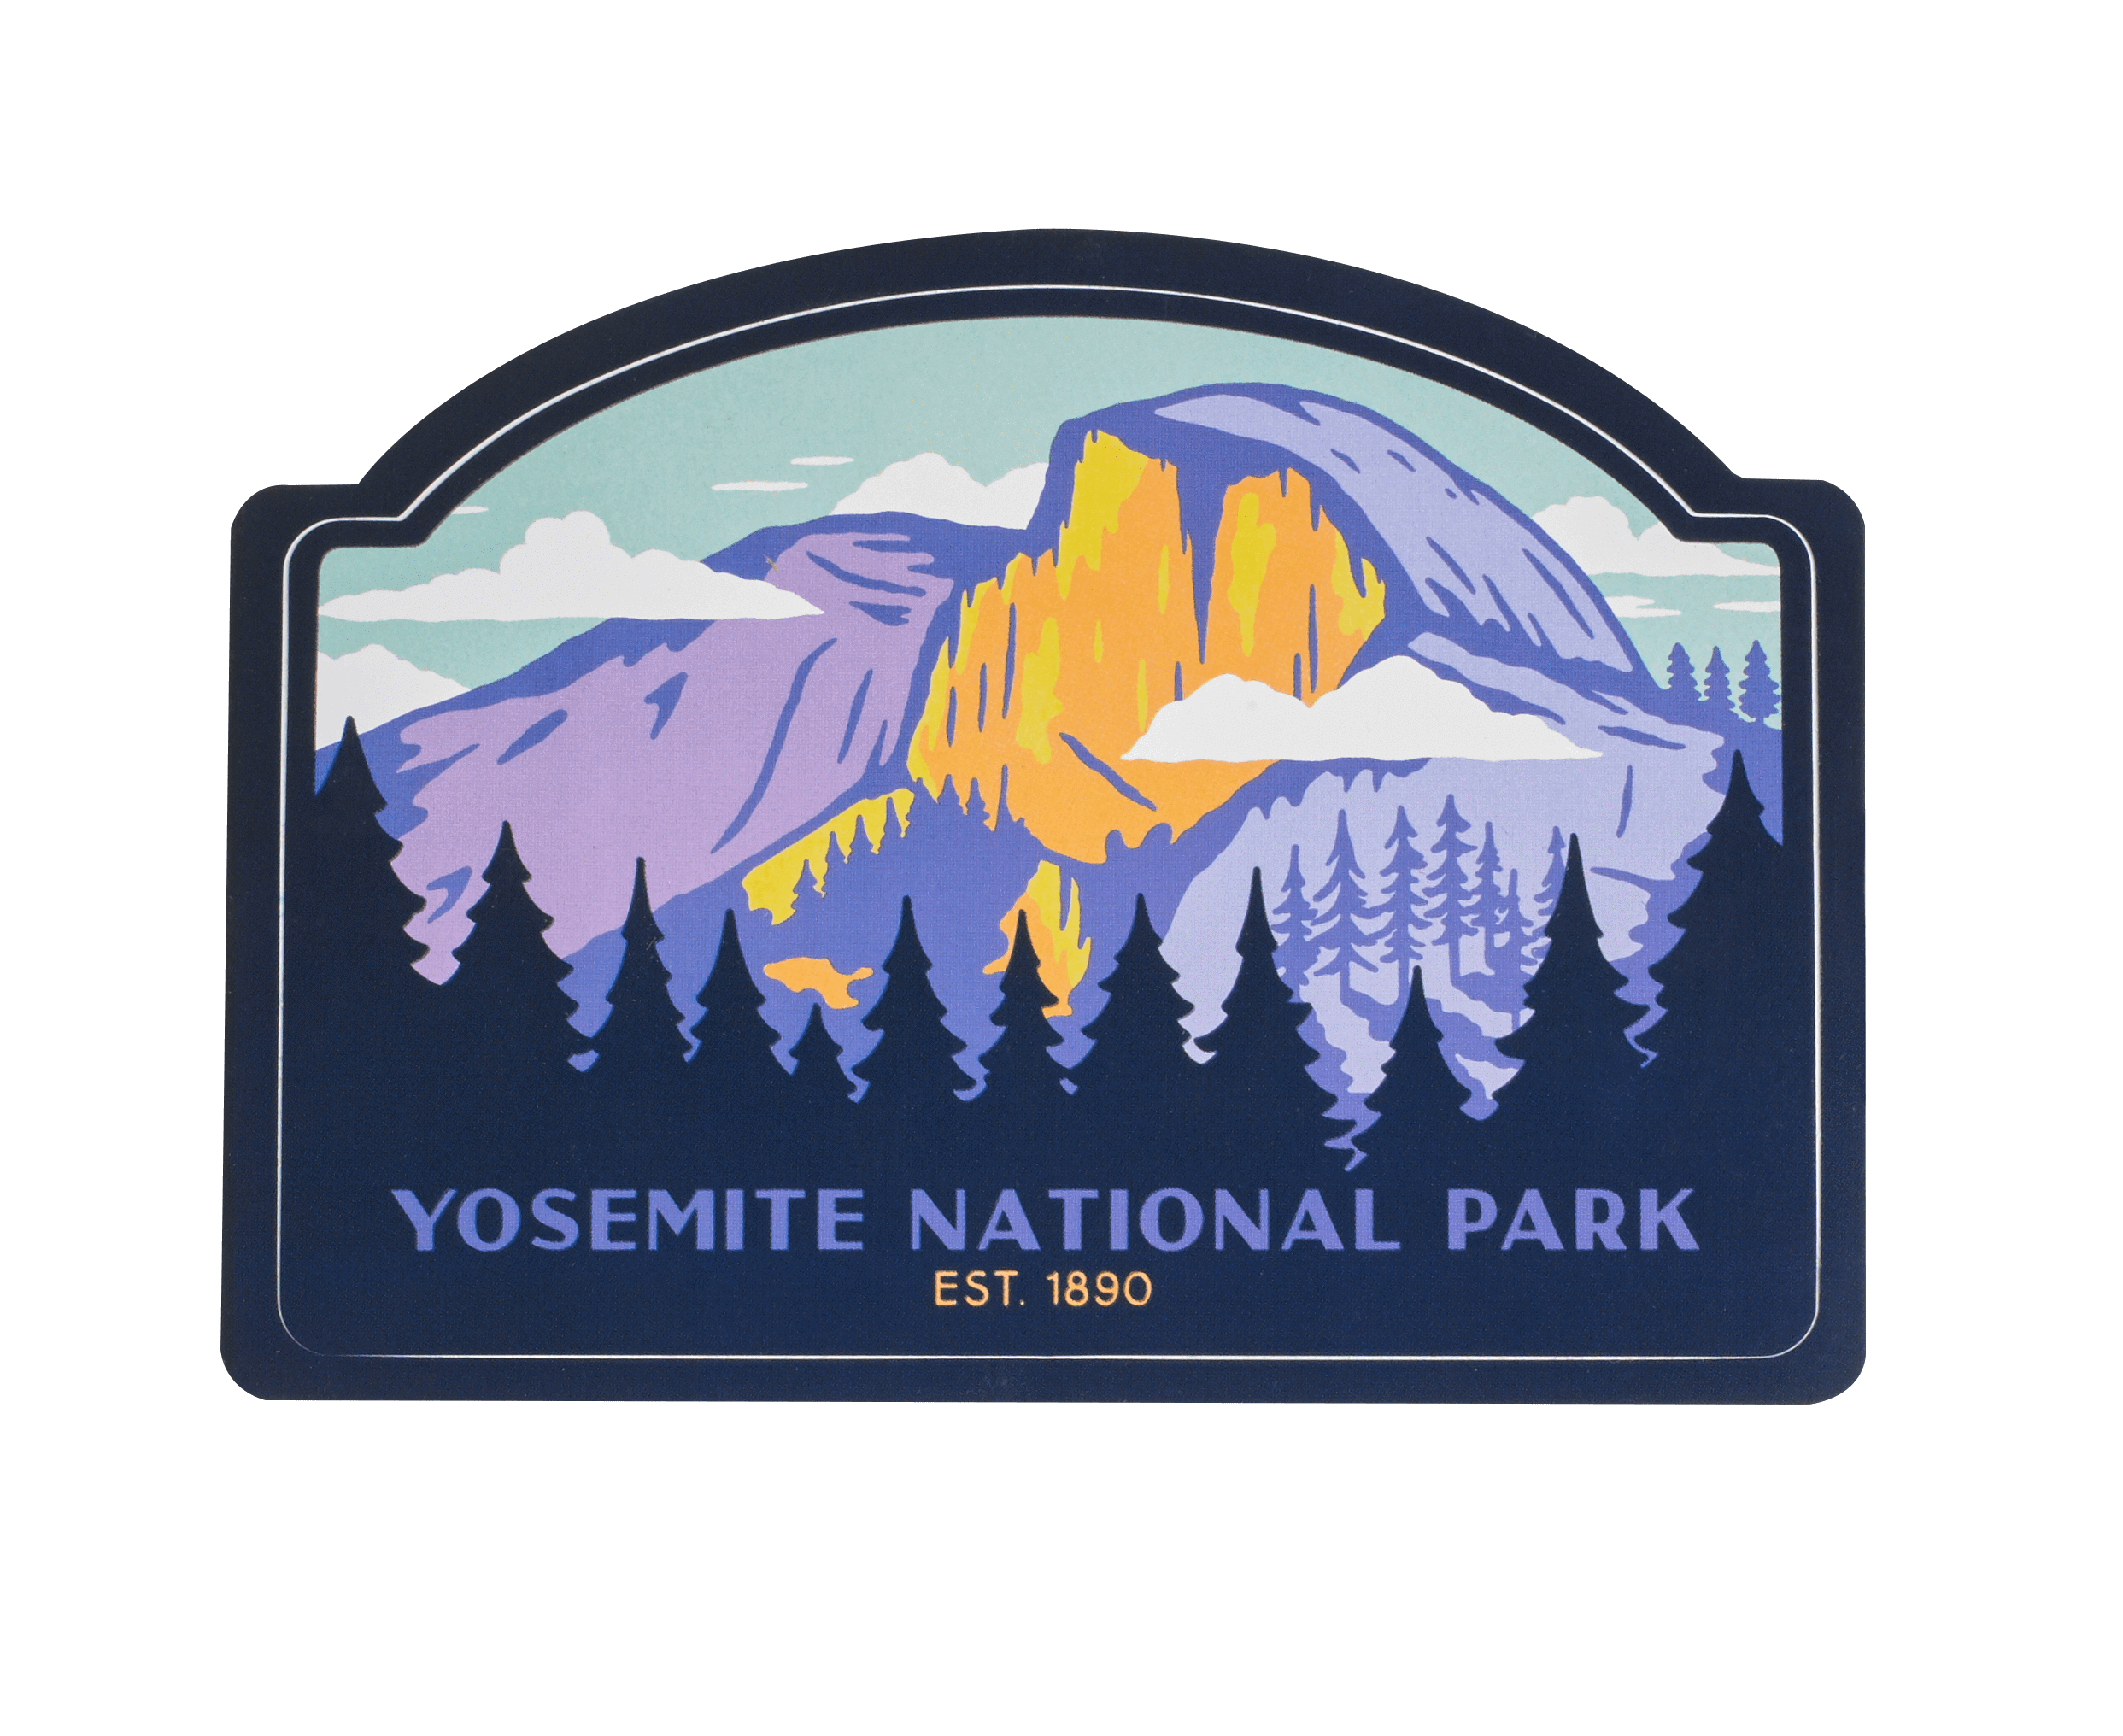 Yosemite National Park Png & Free Yosemite National Park.png.